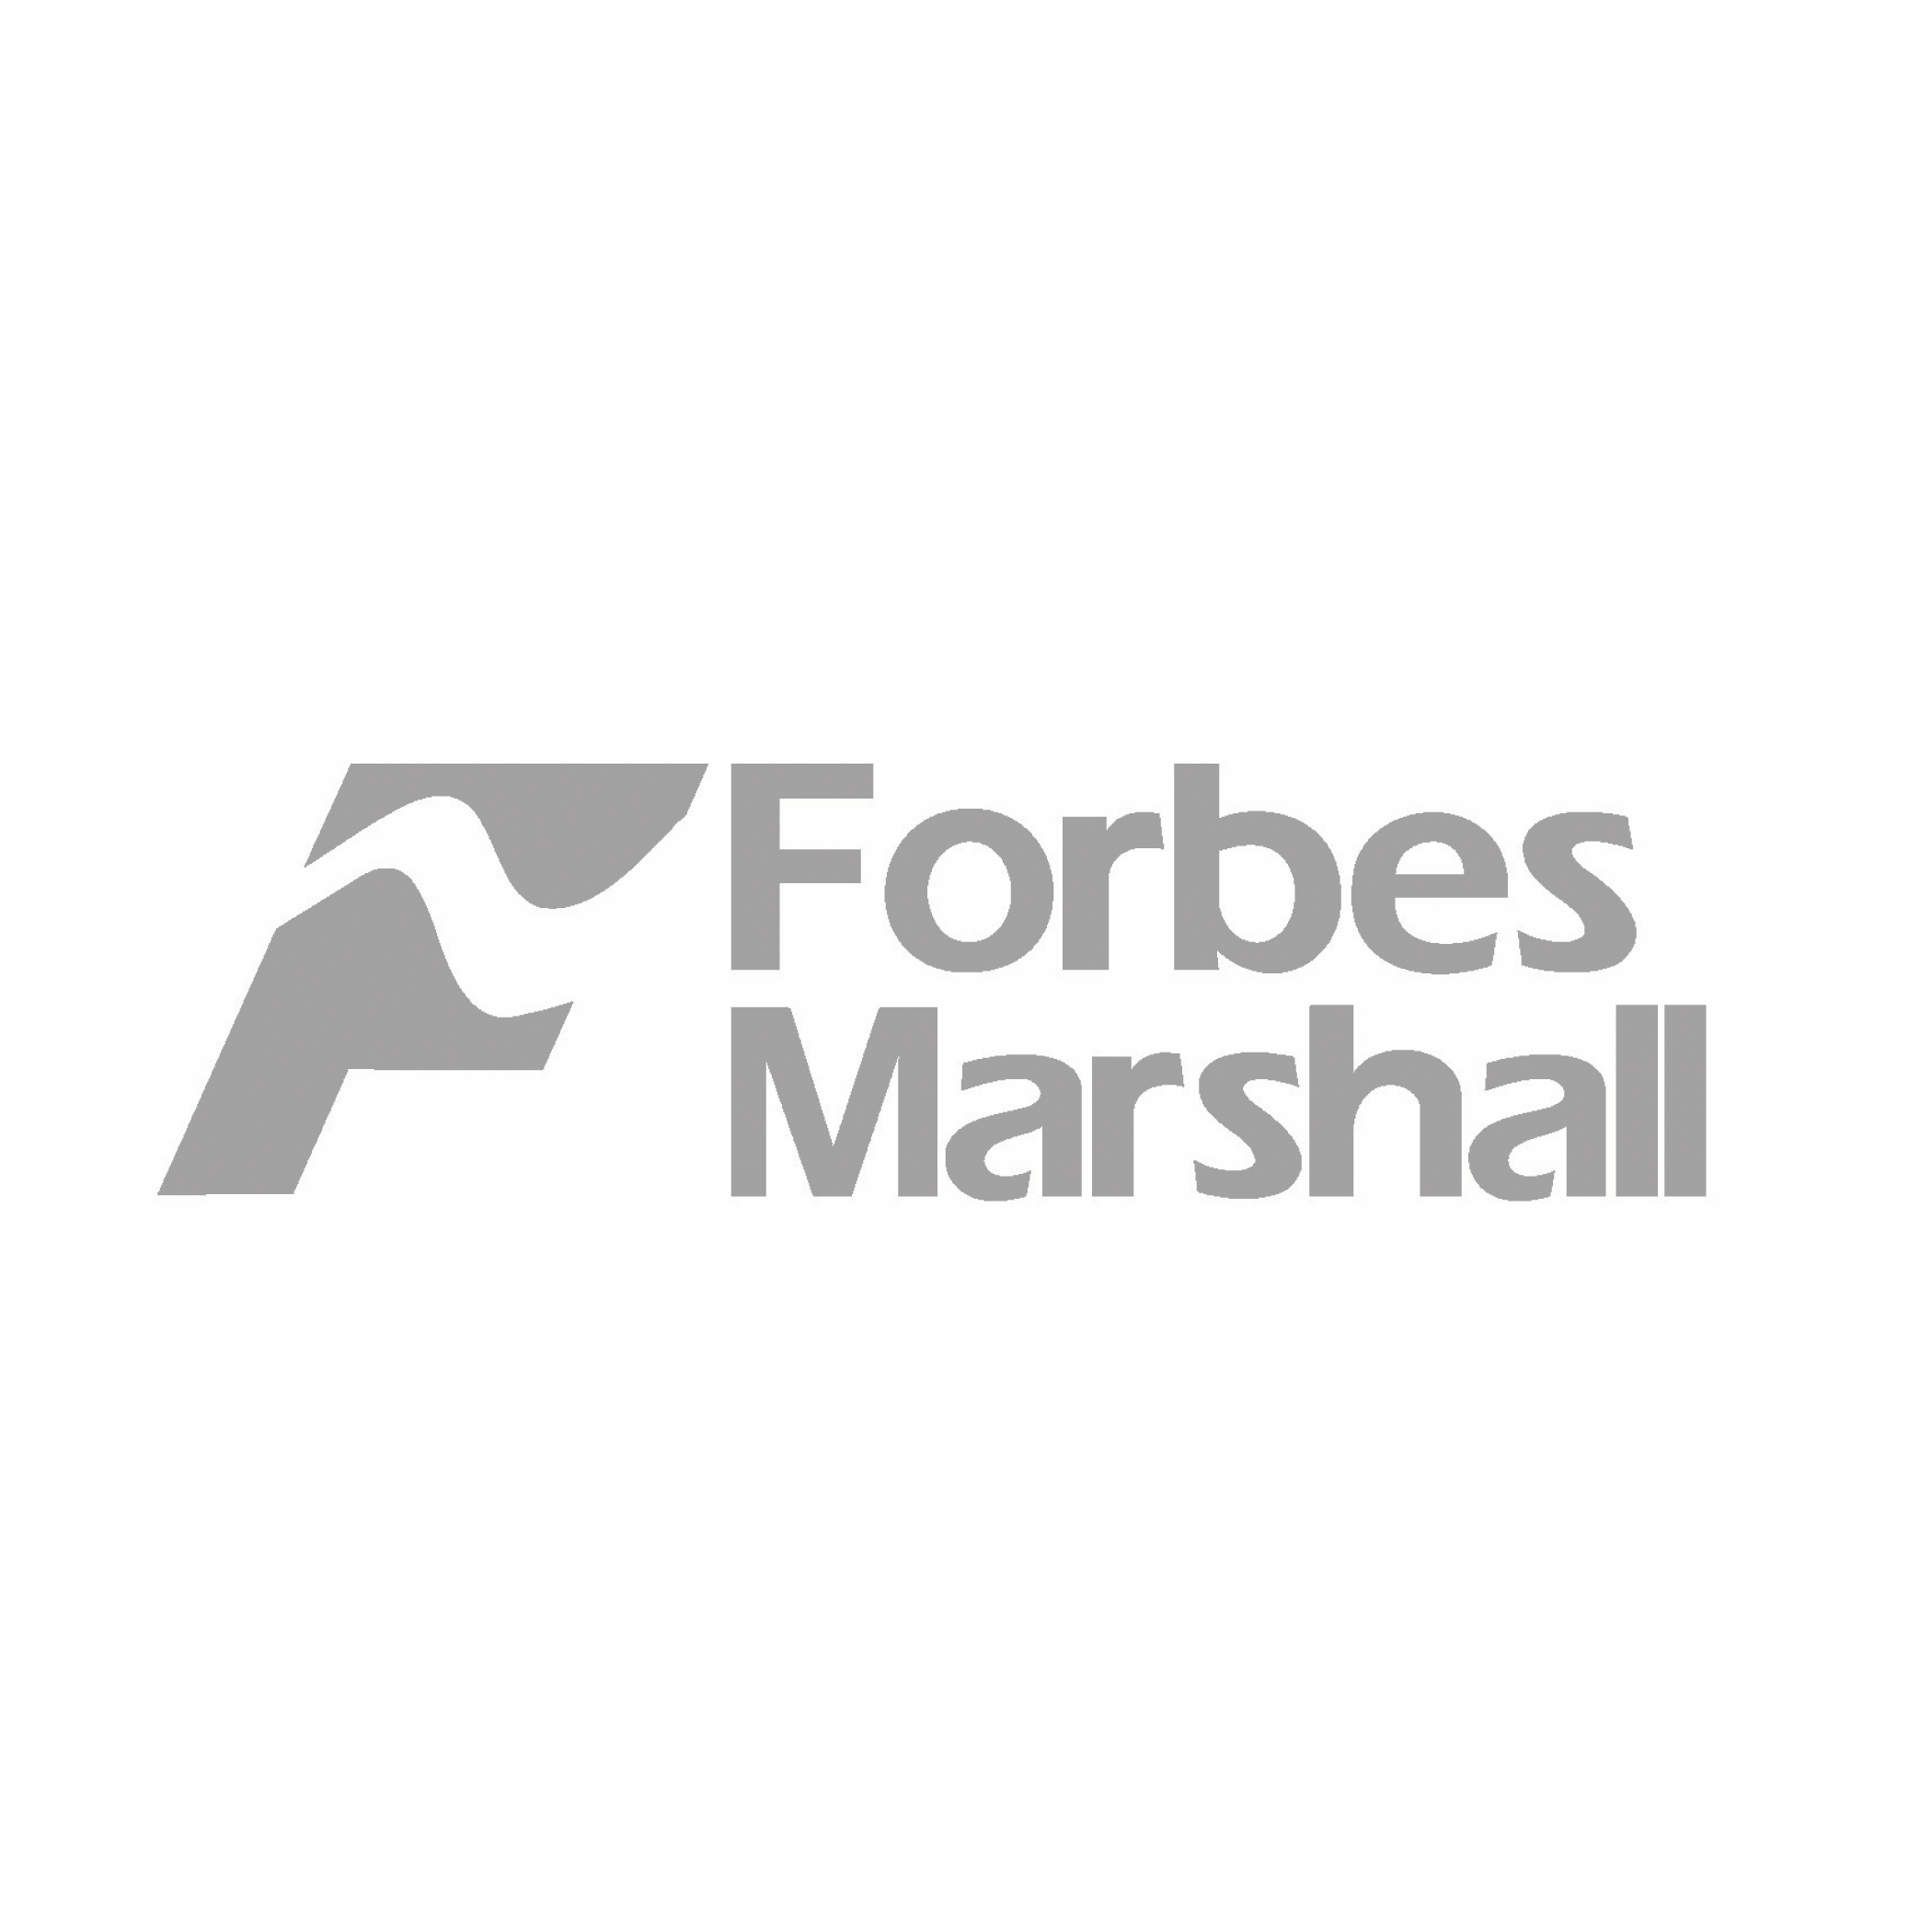 For Forbes Marshall, the India-based manufacturer, we developed the process and protocols for their philanthropic and CR platform.